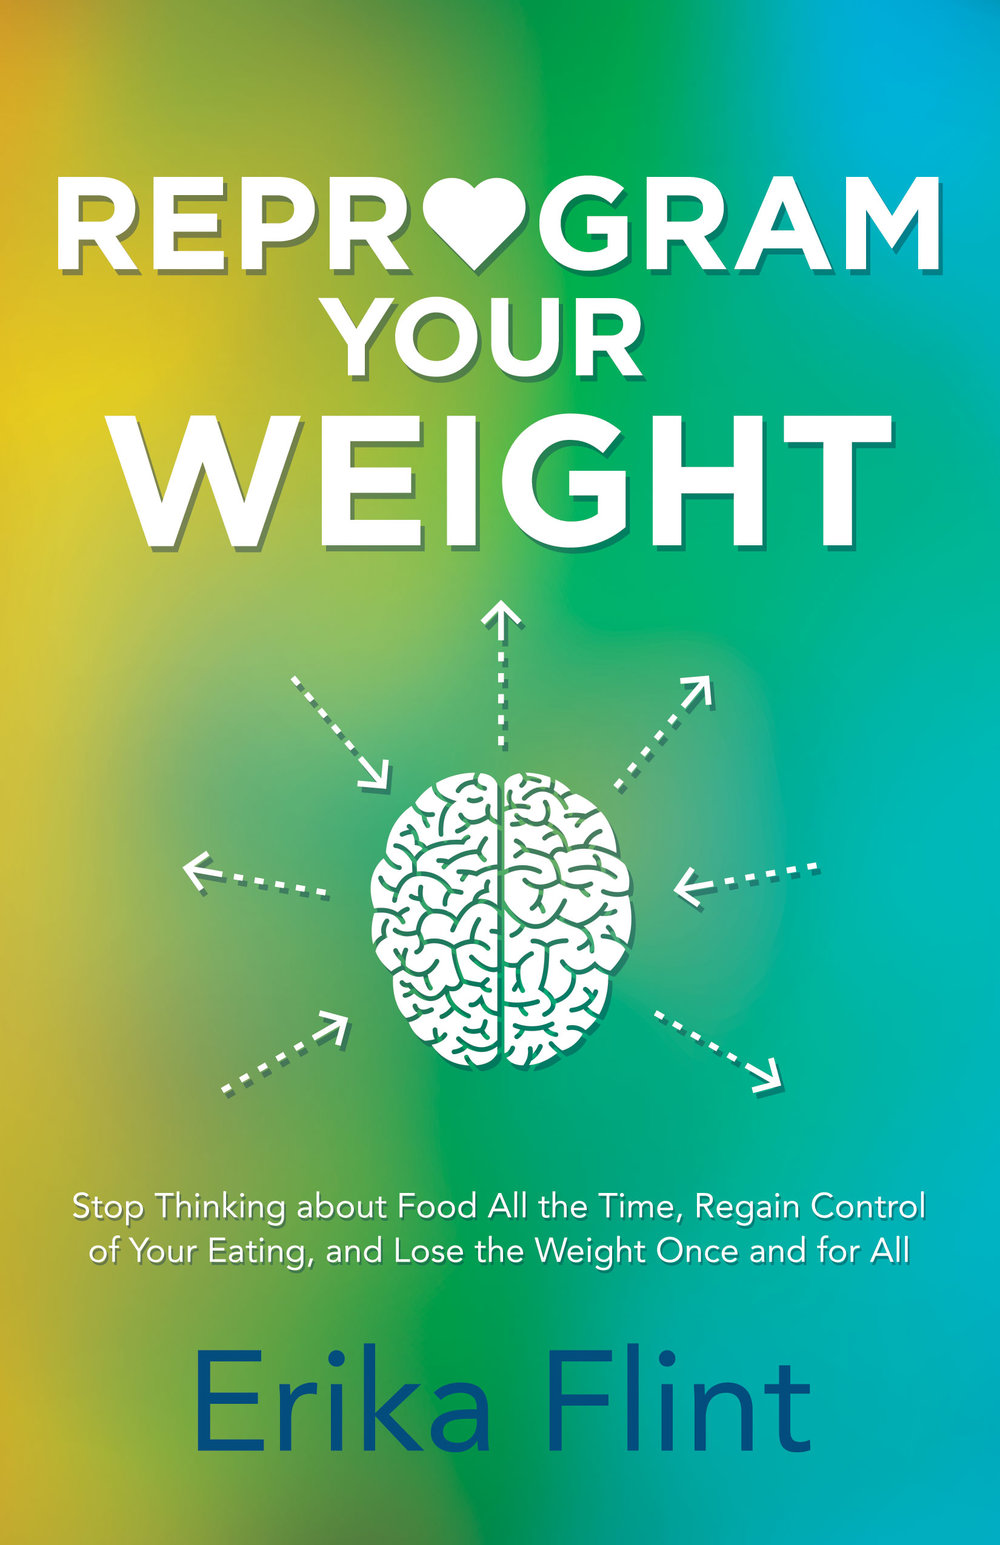 Reprogram Your Weight : Erika's best-selling book is now available for pre-sale and is scheduled for release in bookstores across Northern America on July 4, 2017